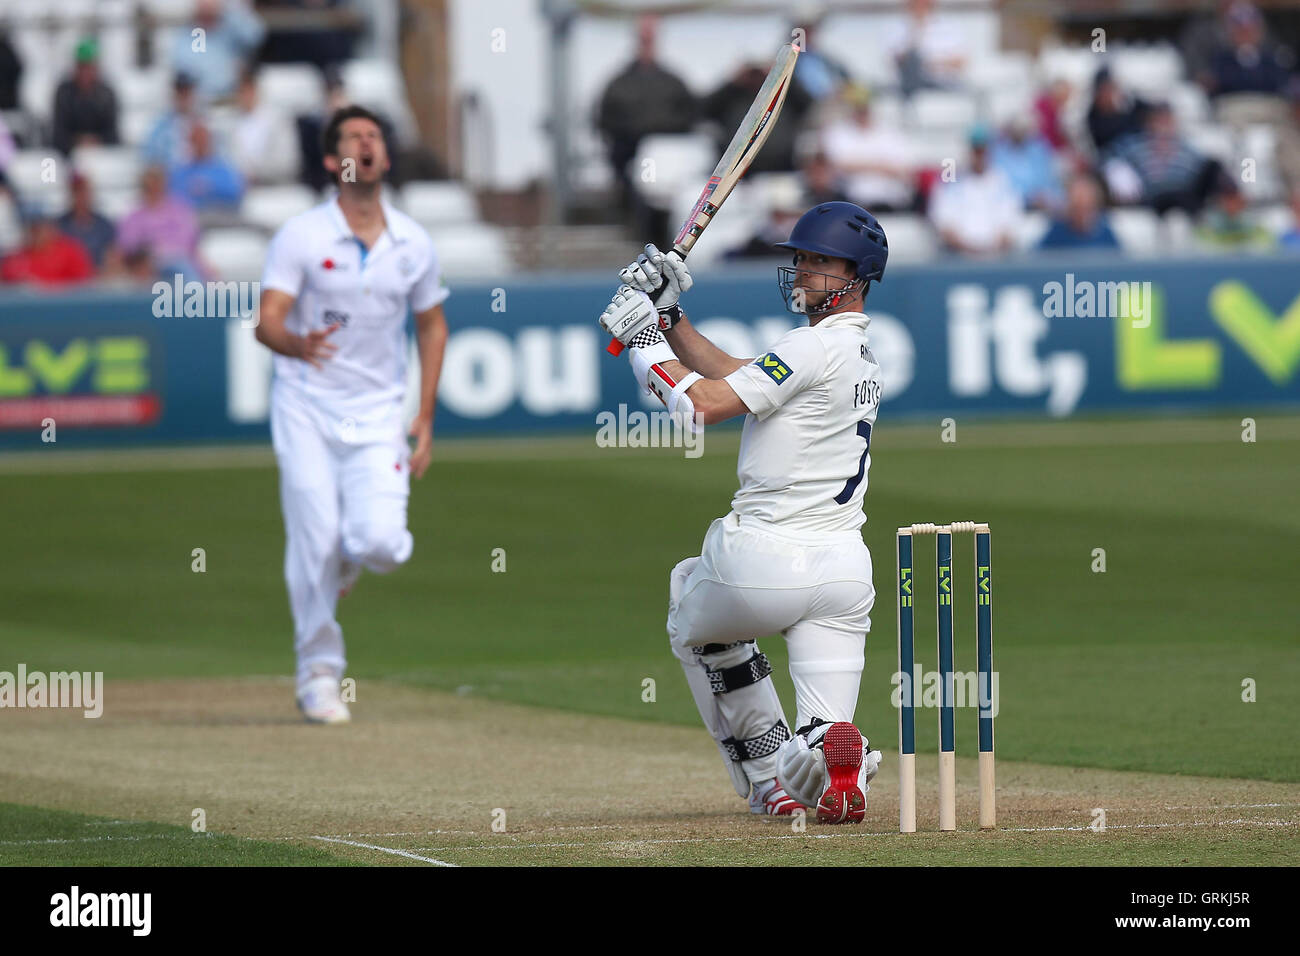 James Foster of Essex attacks the bowling of Tim Groenewald - Essex CCC vs Derbyshire CCC - LV County Championship - Stock Image